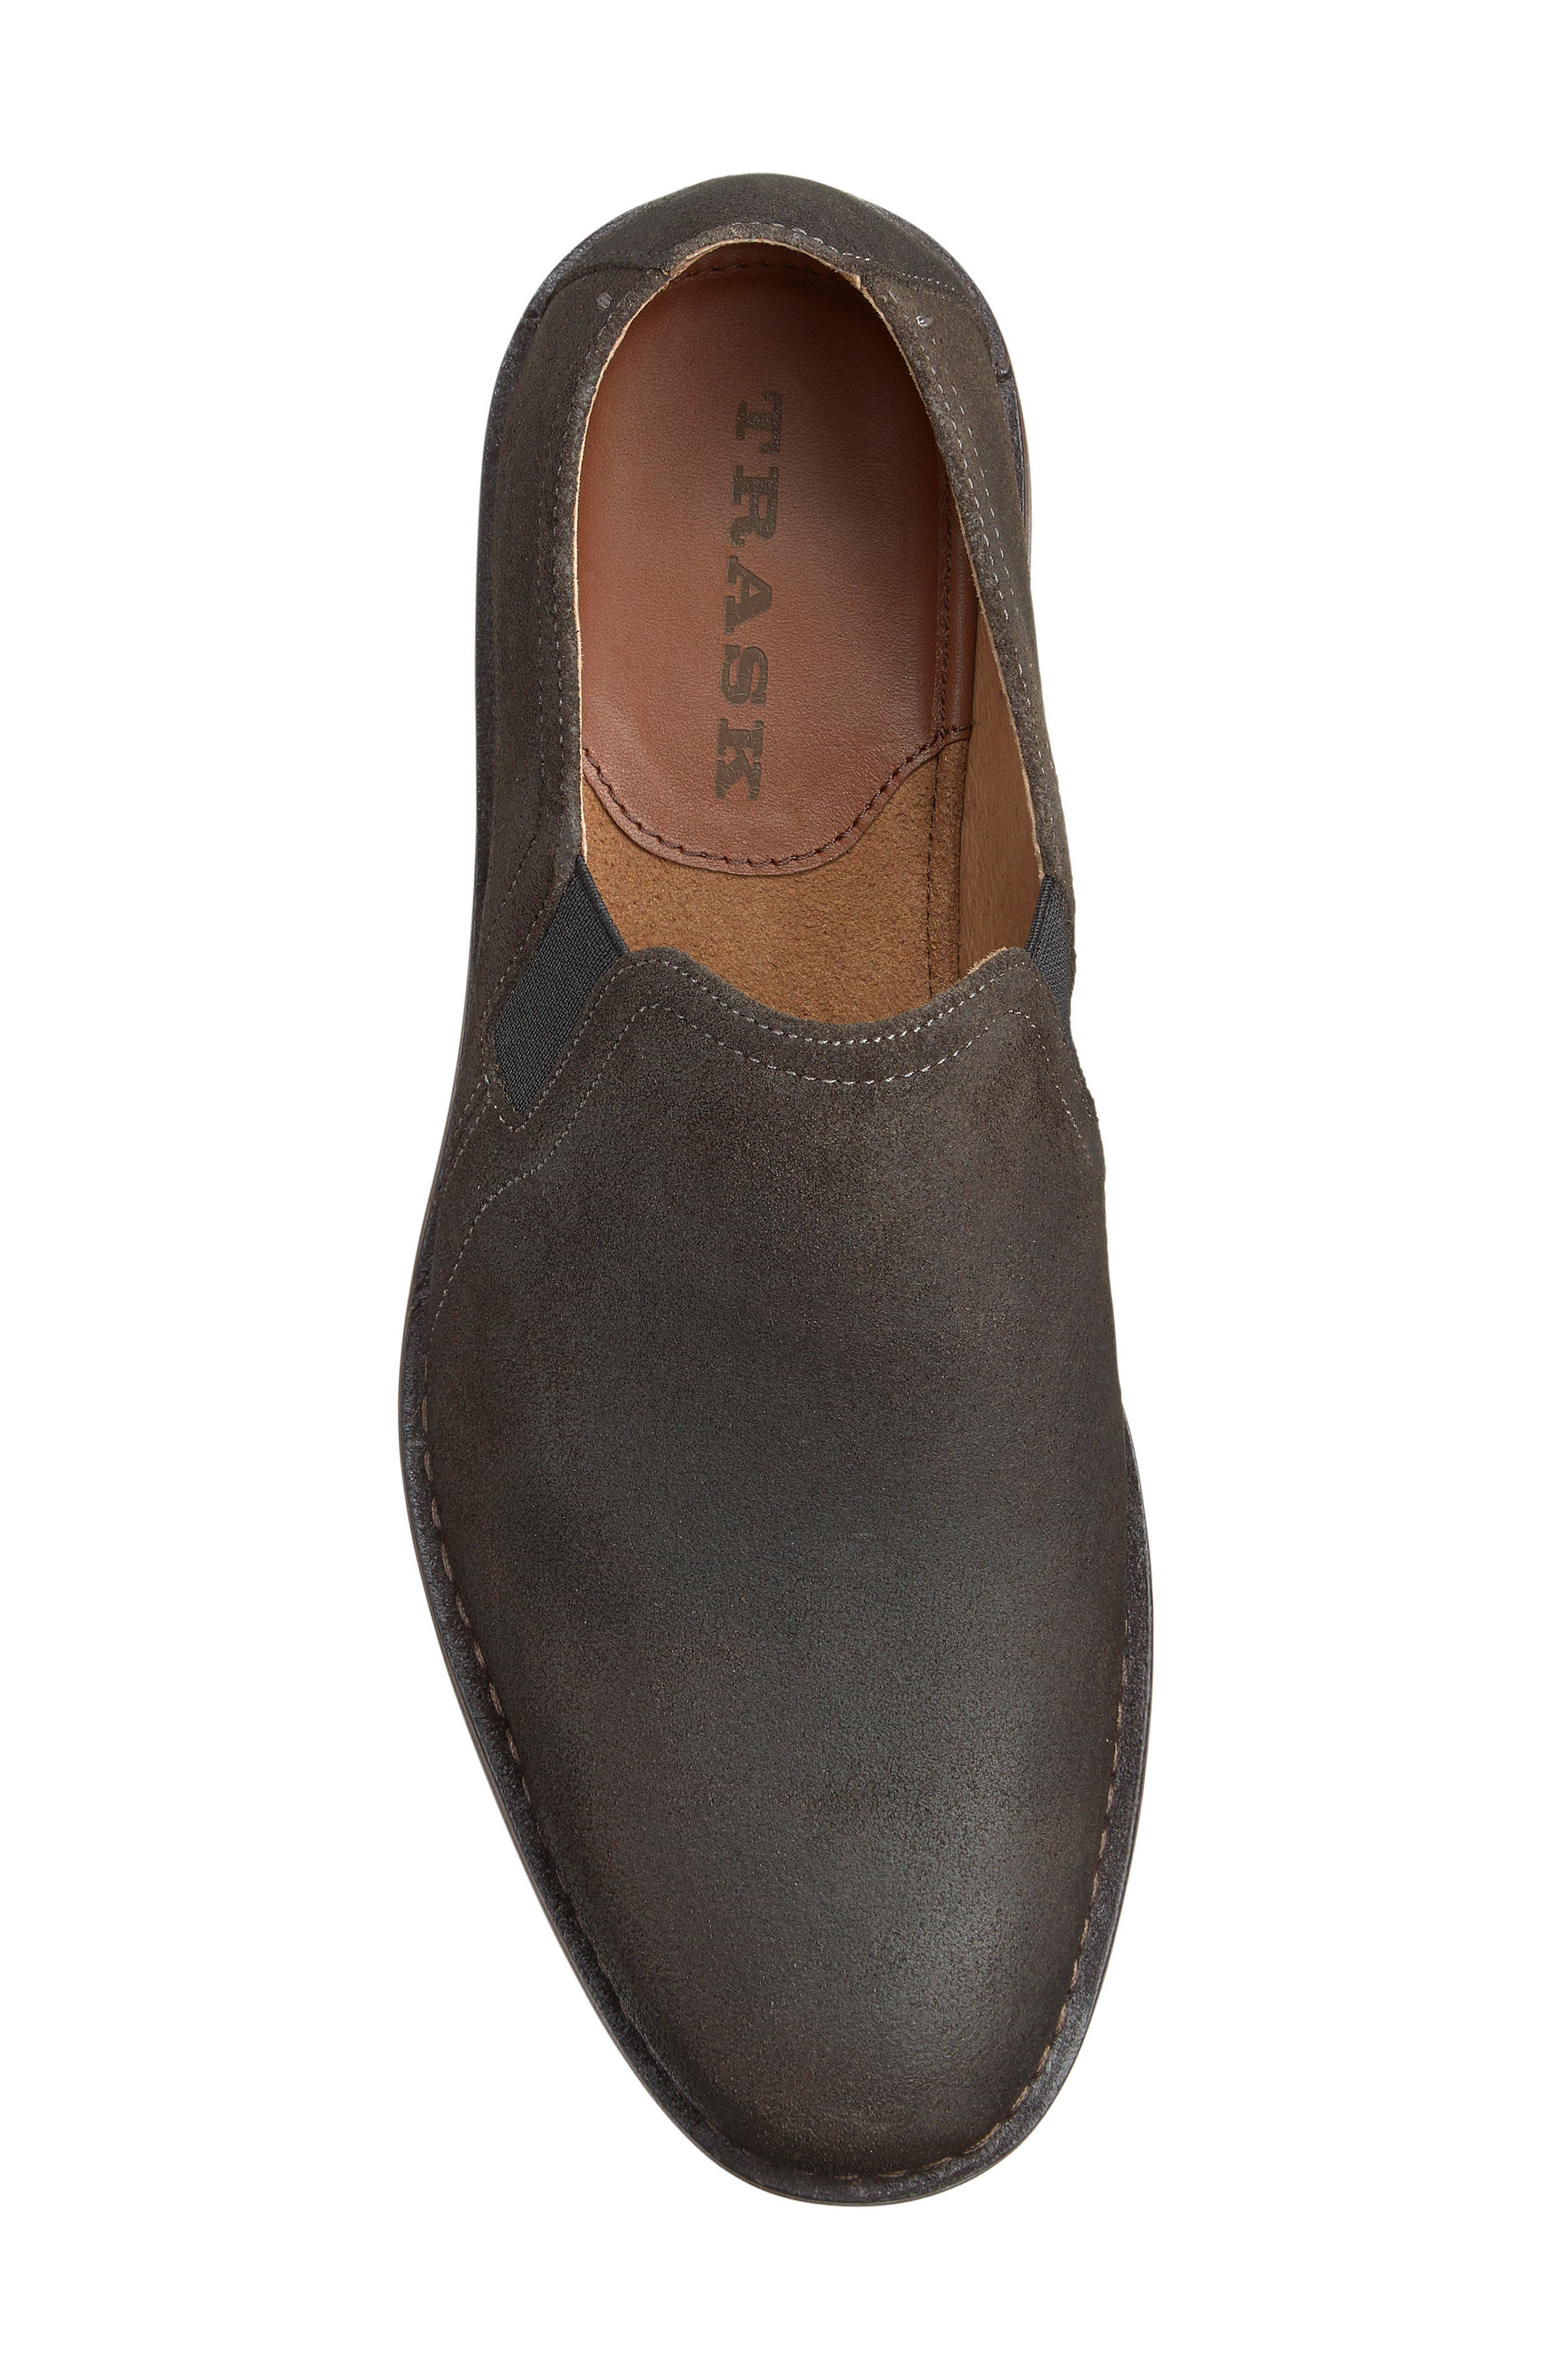 'Blaine' Venetian Loafer,                             Alternate thumbnail 3, color,                             Gray Waxed Suede